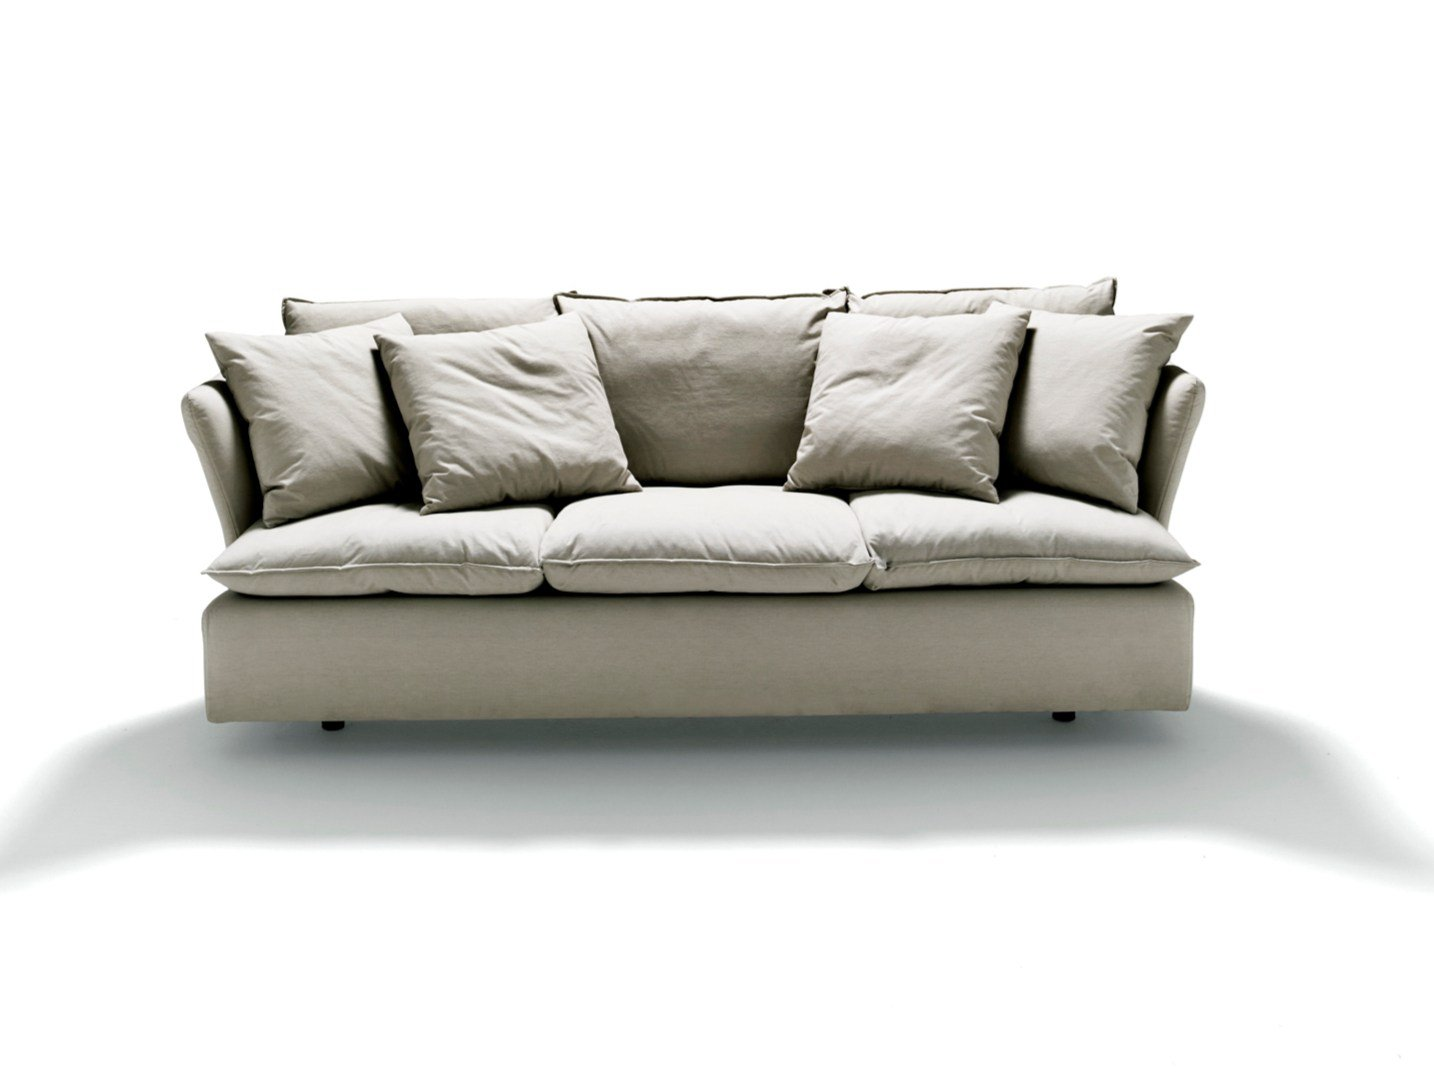 Fabric Sofa With Removable Cover Pillow By De Padova